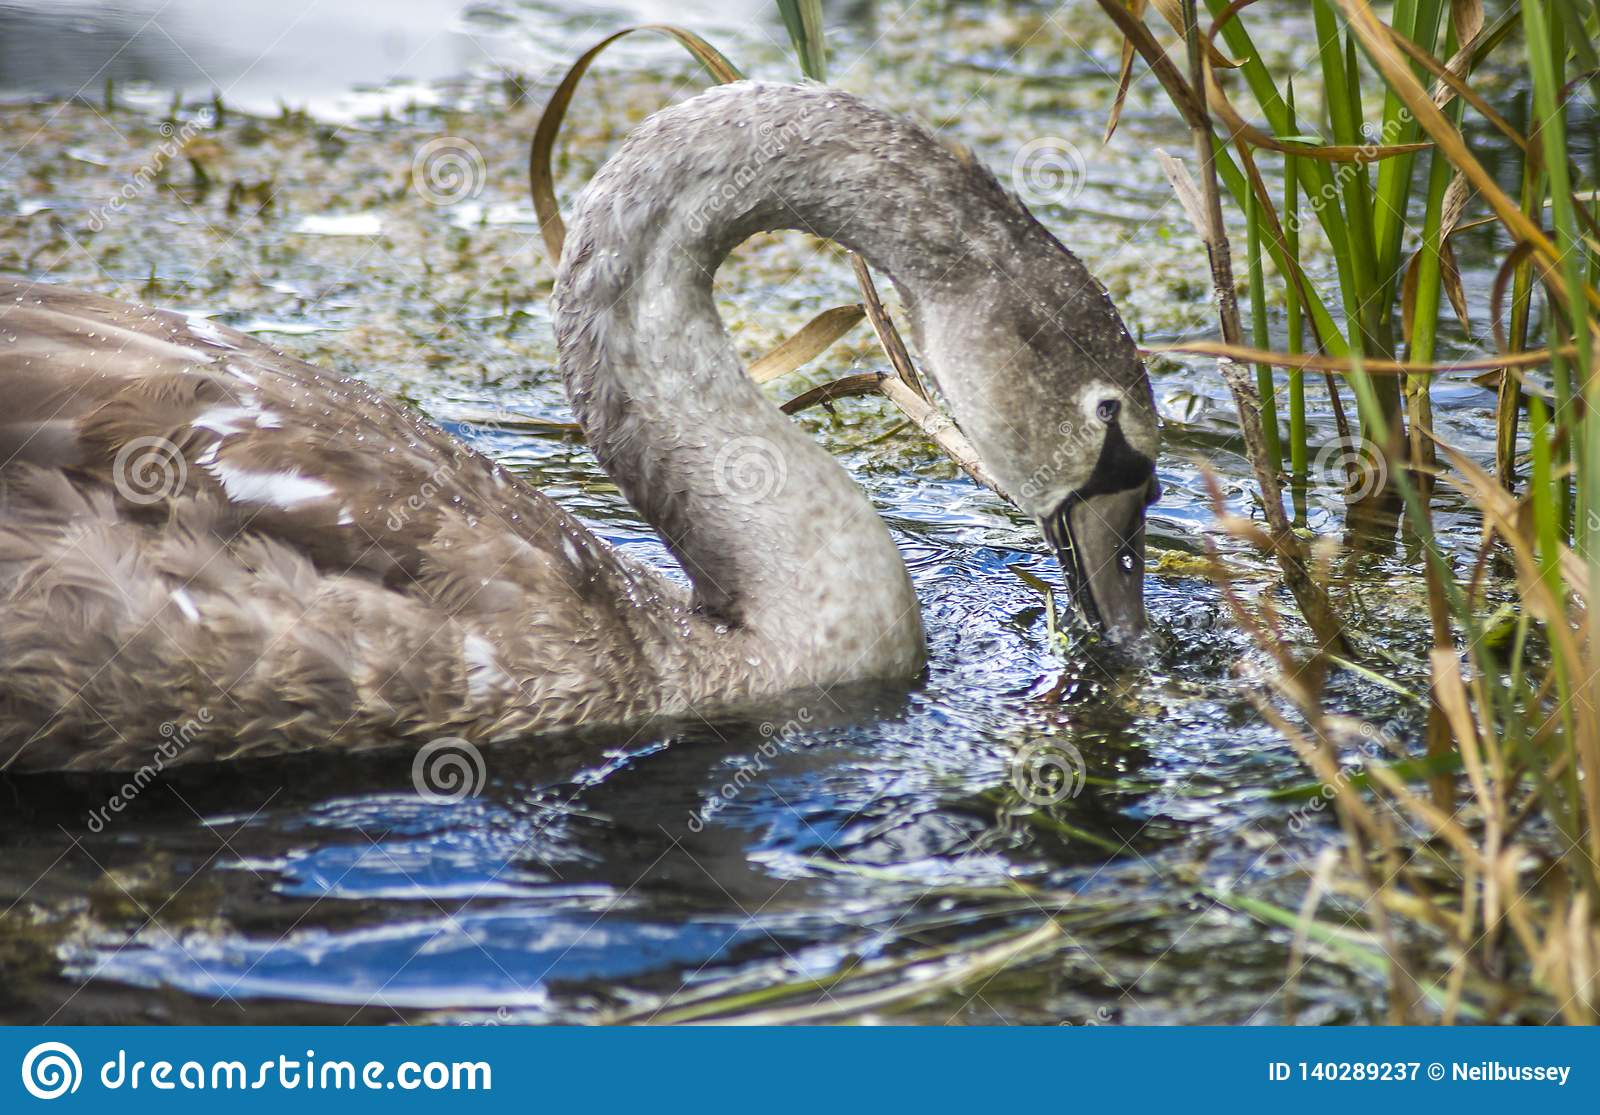 Young Swan feeding in reeds of lake